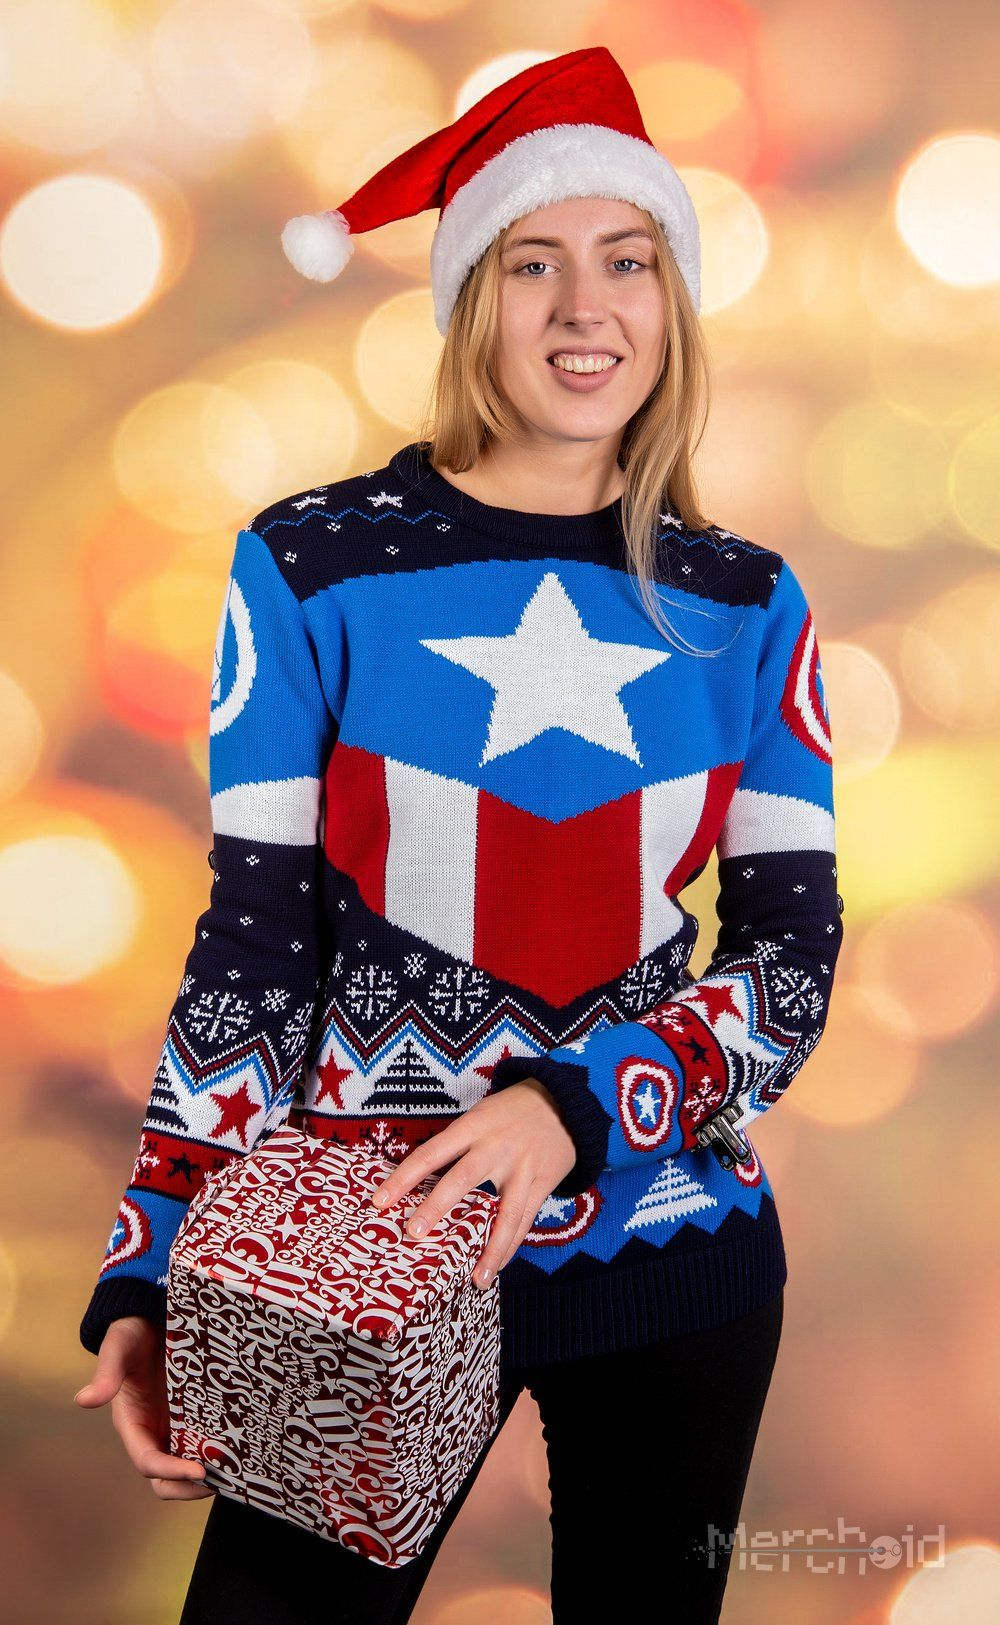 Captain America Red White And Blue Knitted Christmas